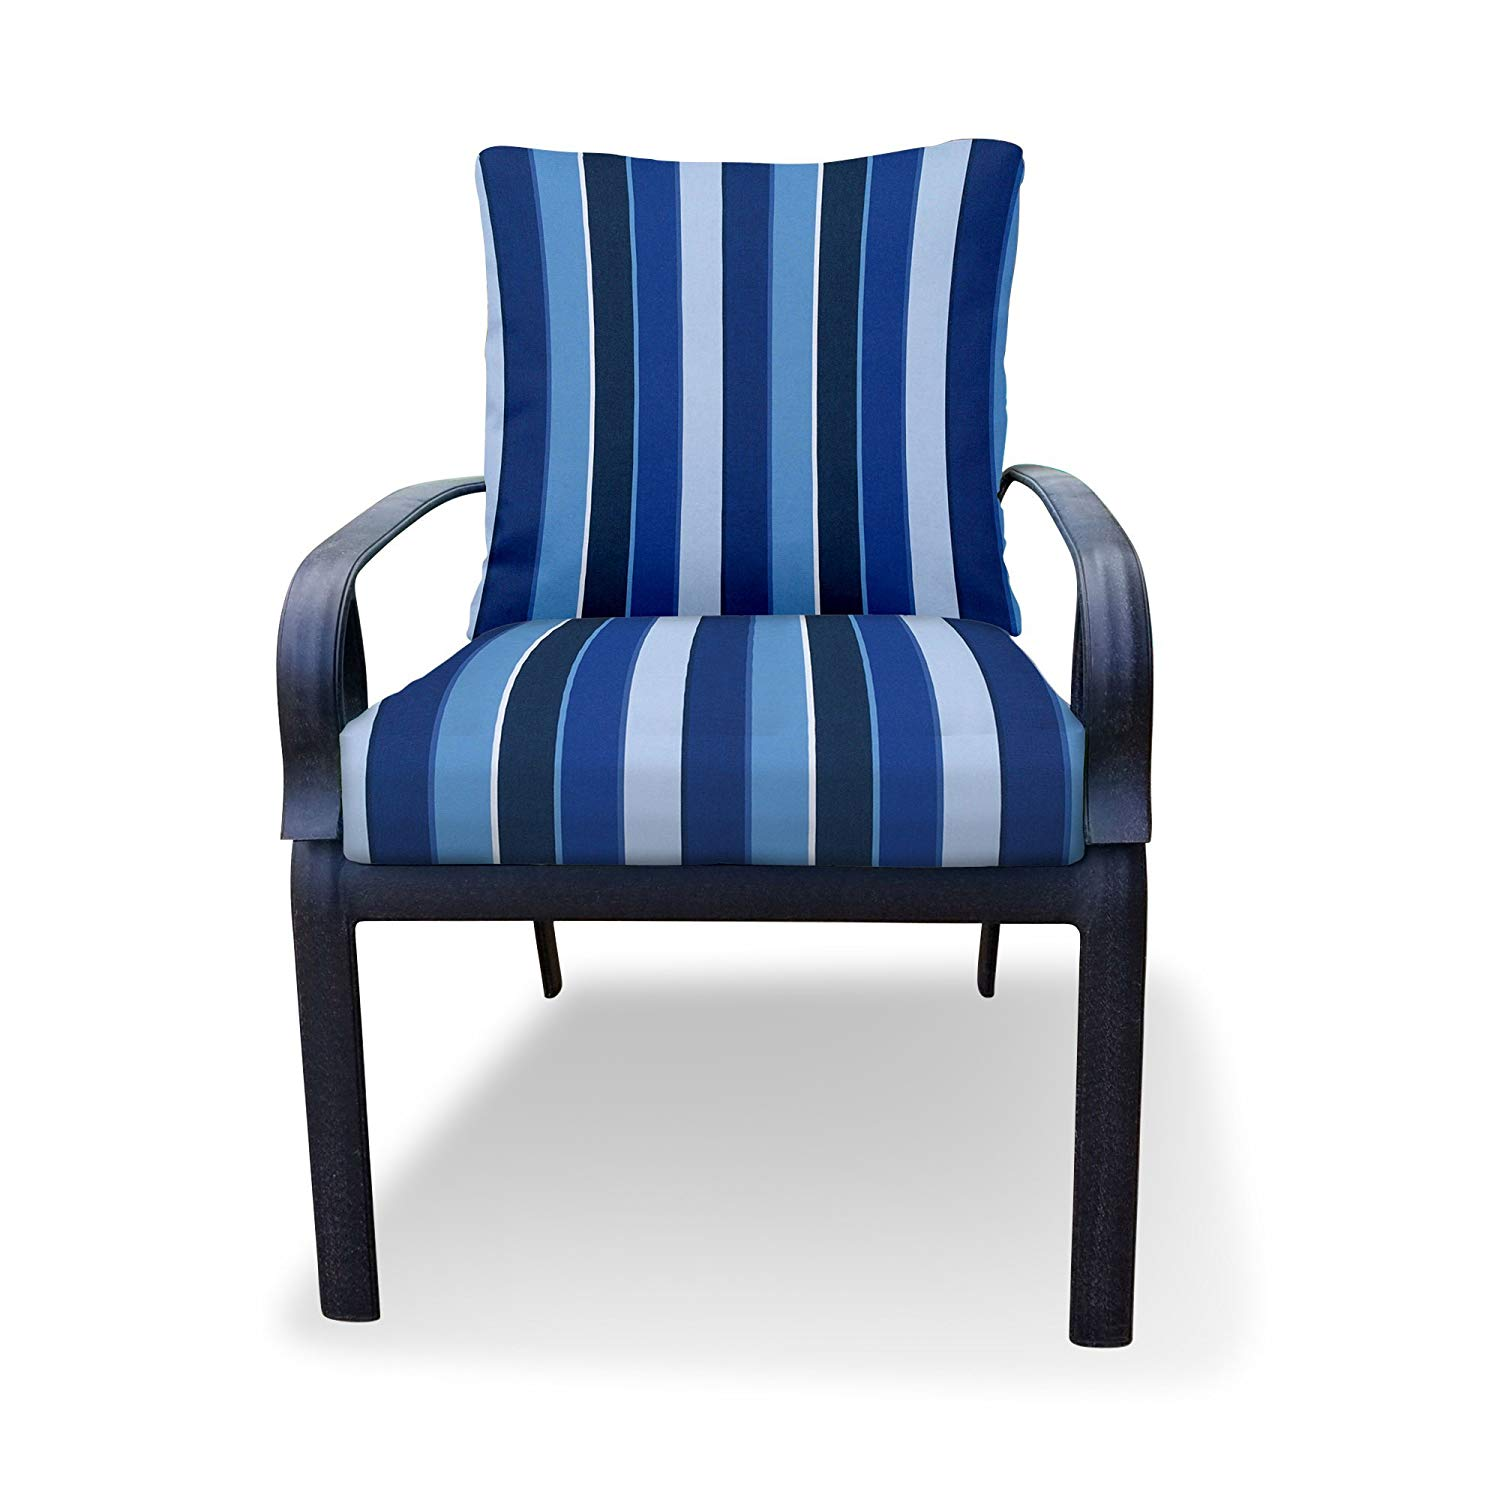 cheap blue outdoor seat cushions find